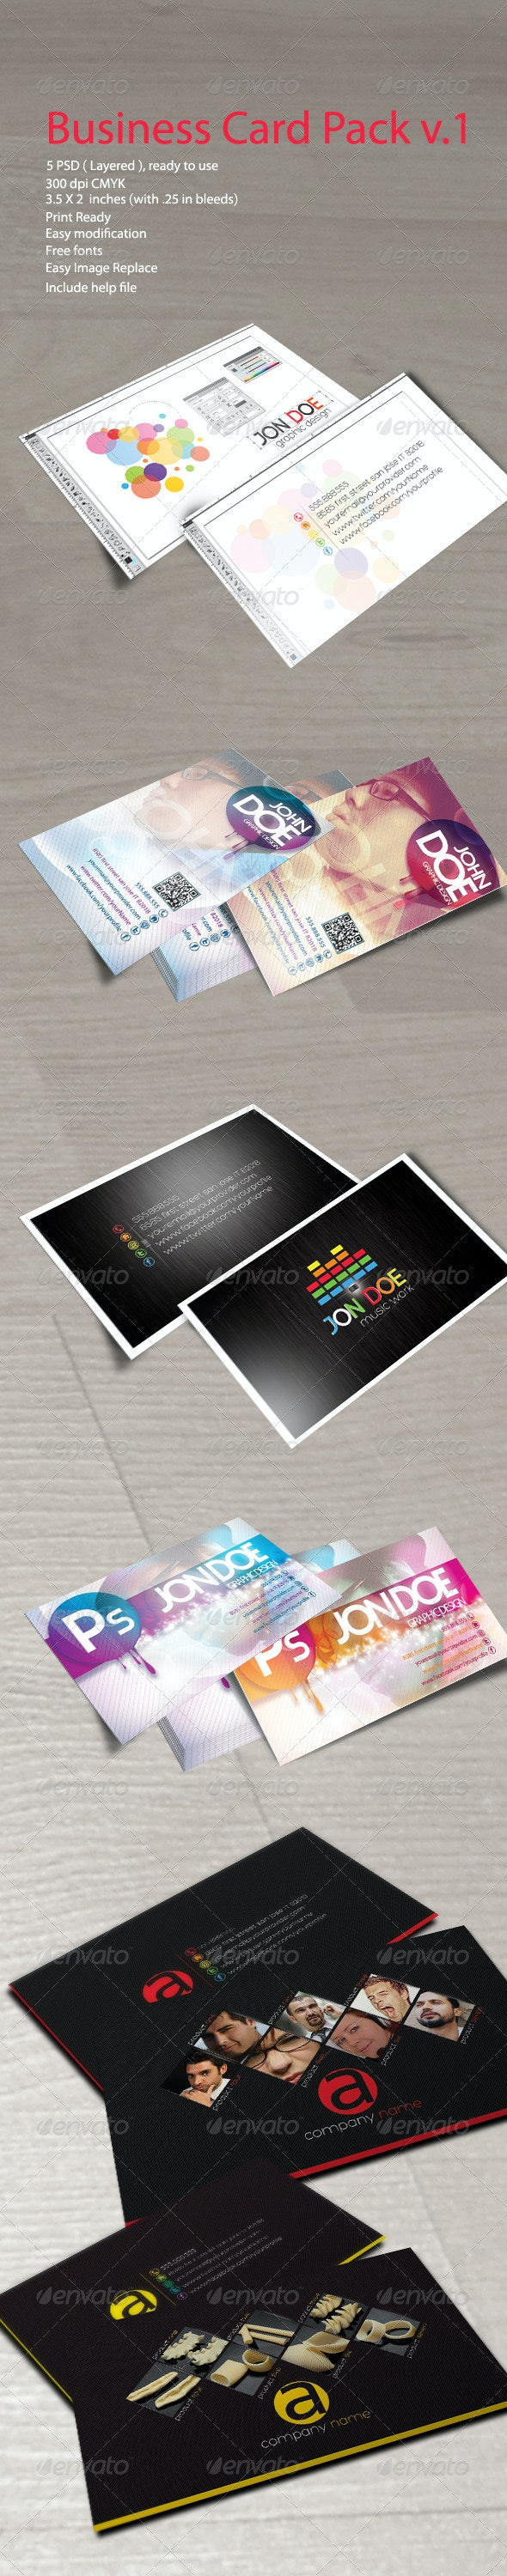 Business Card Pack Vol. 1 - Business Cards Print Templates